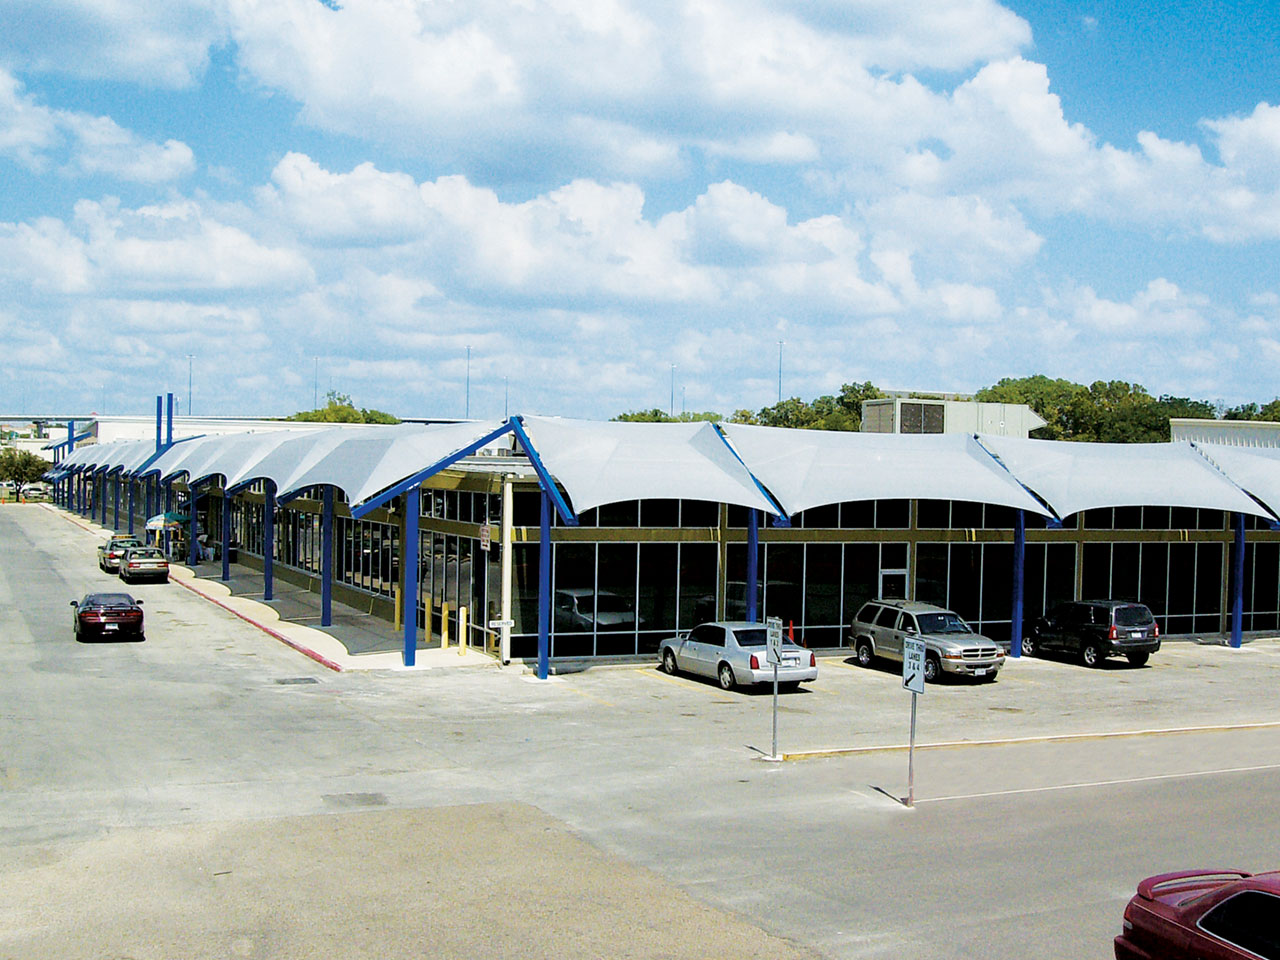 Shade Canopies for Businesses - Travis County Tax Office